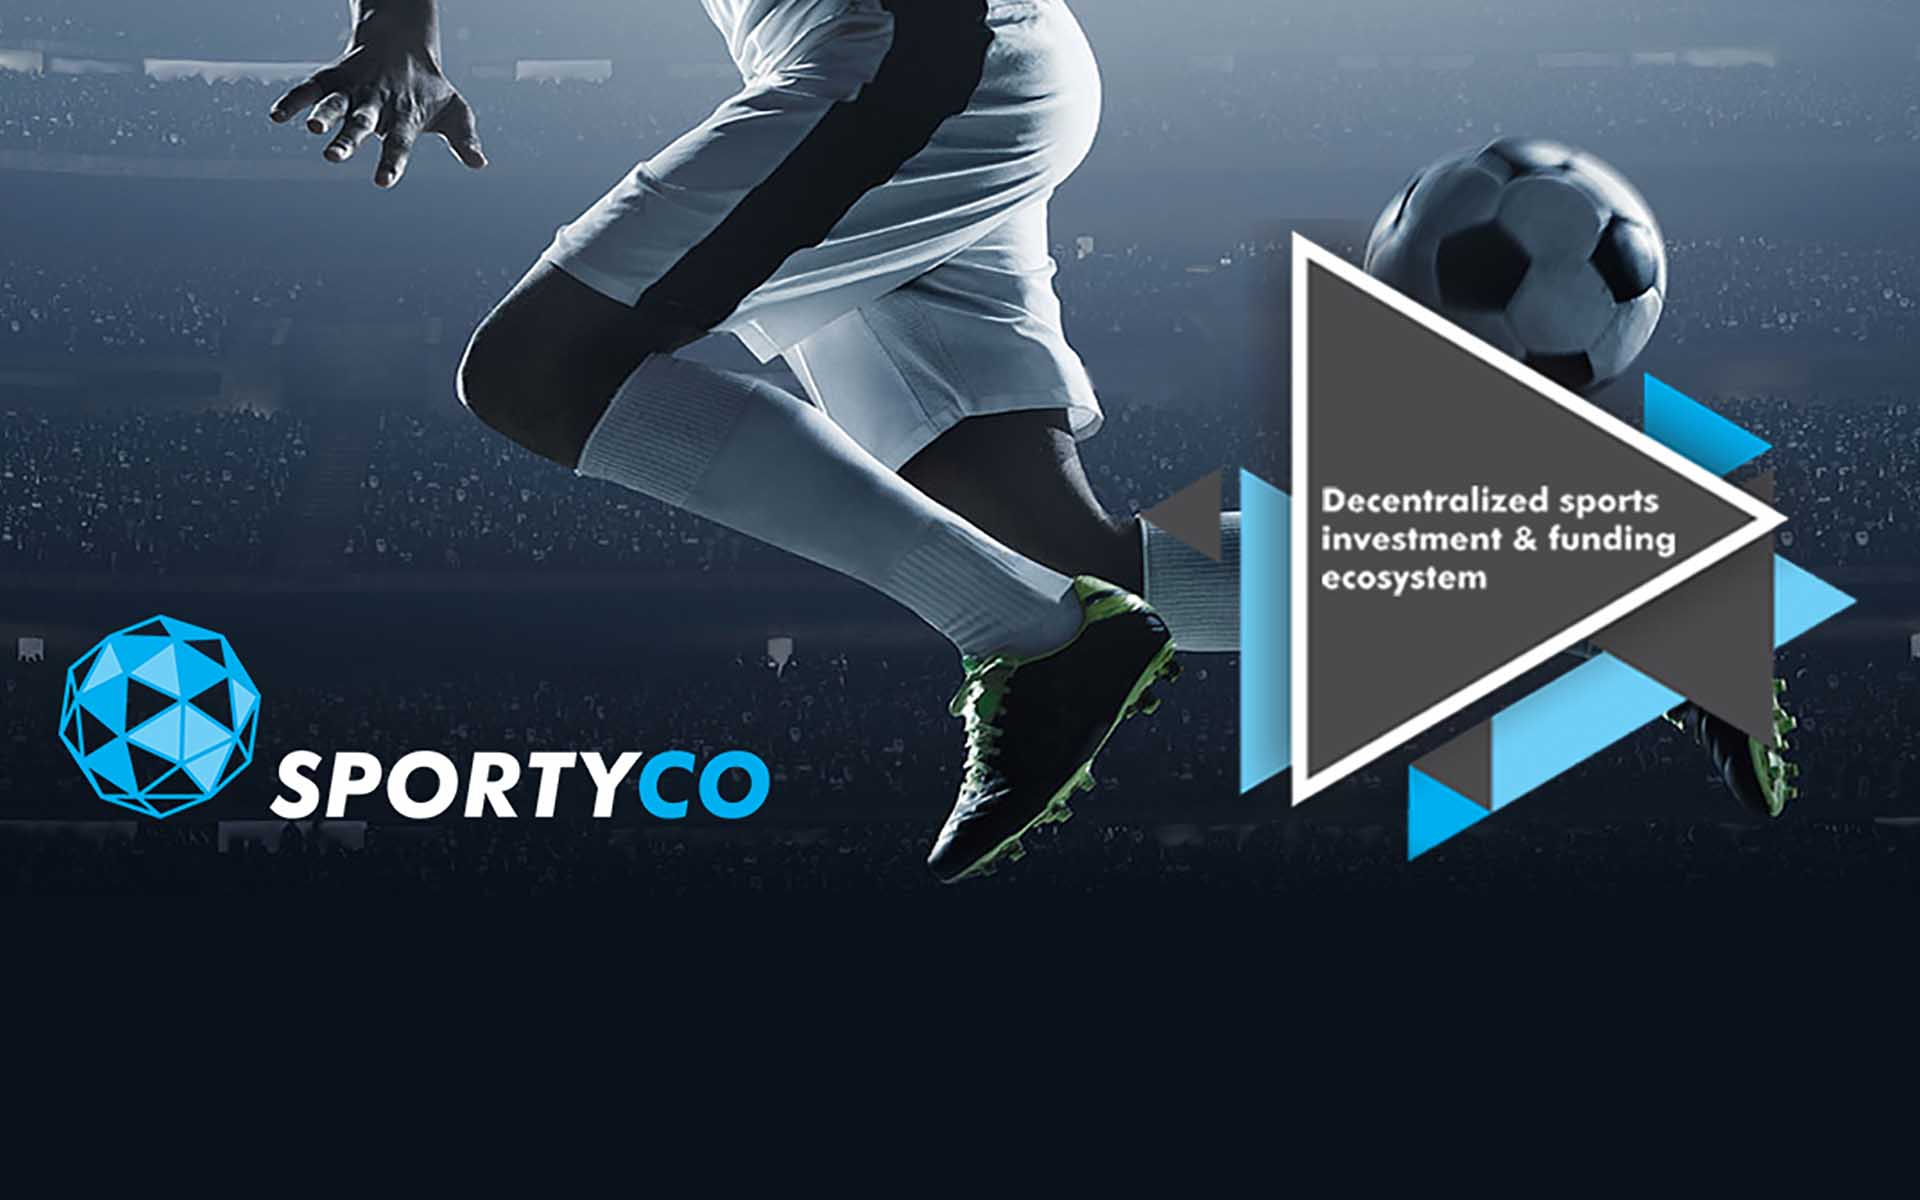 SportyCo Hits a Home Run with Their Rebrand